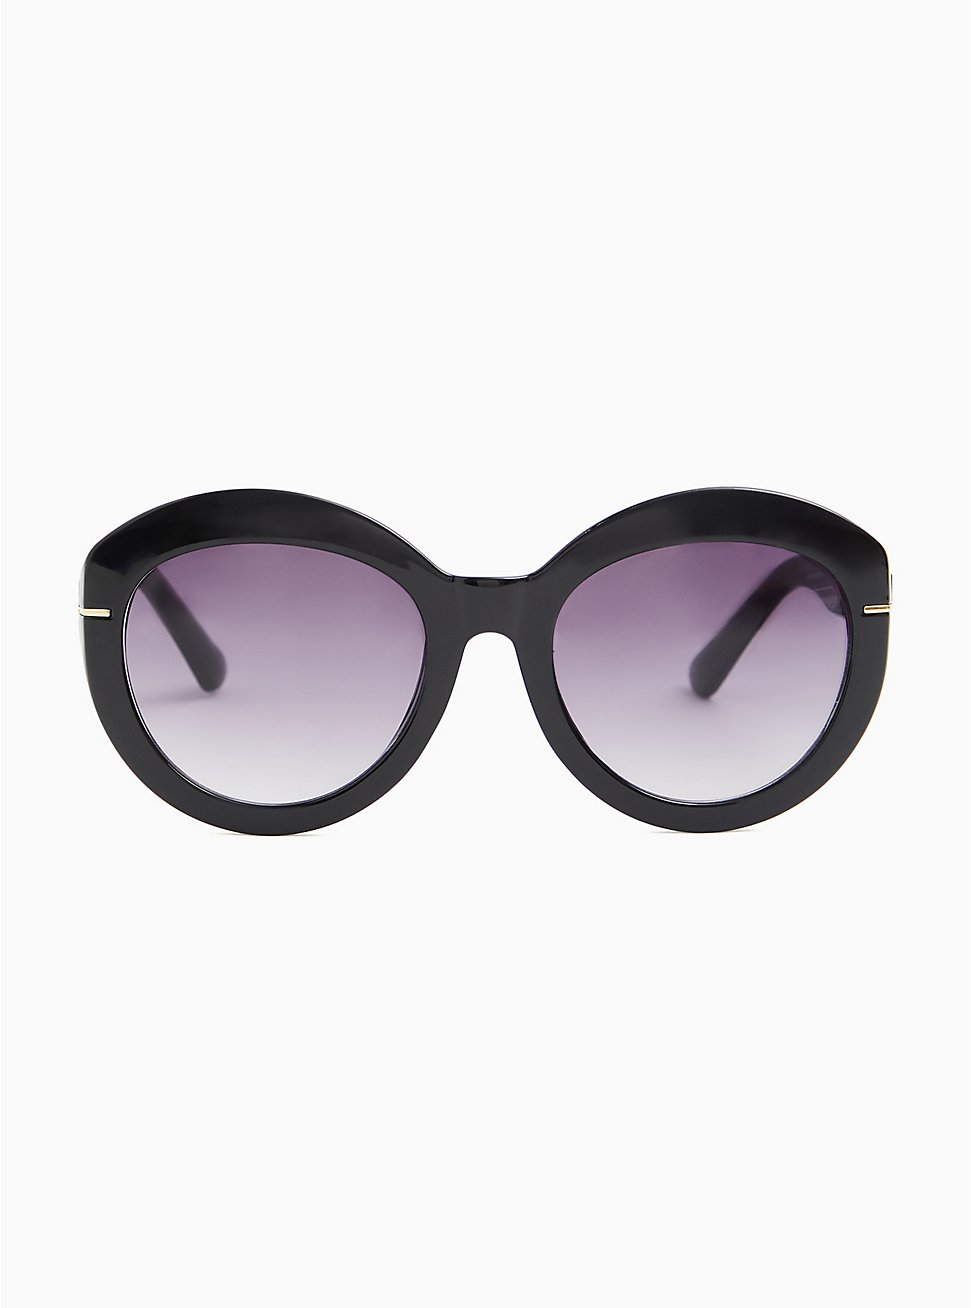 Black Oversized Oval Sunglasses, , hi-res